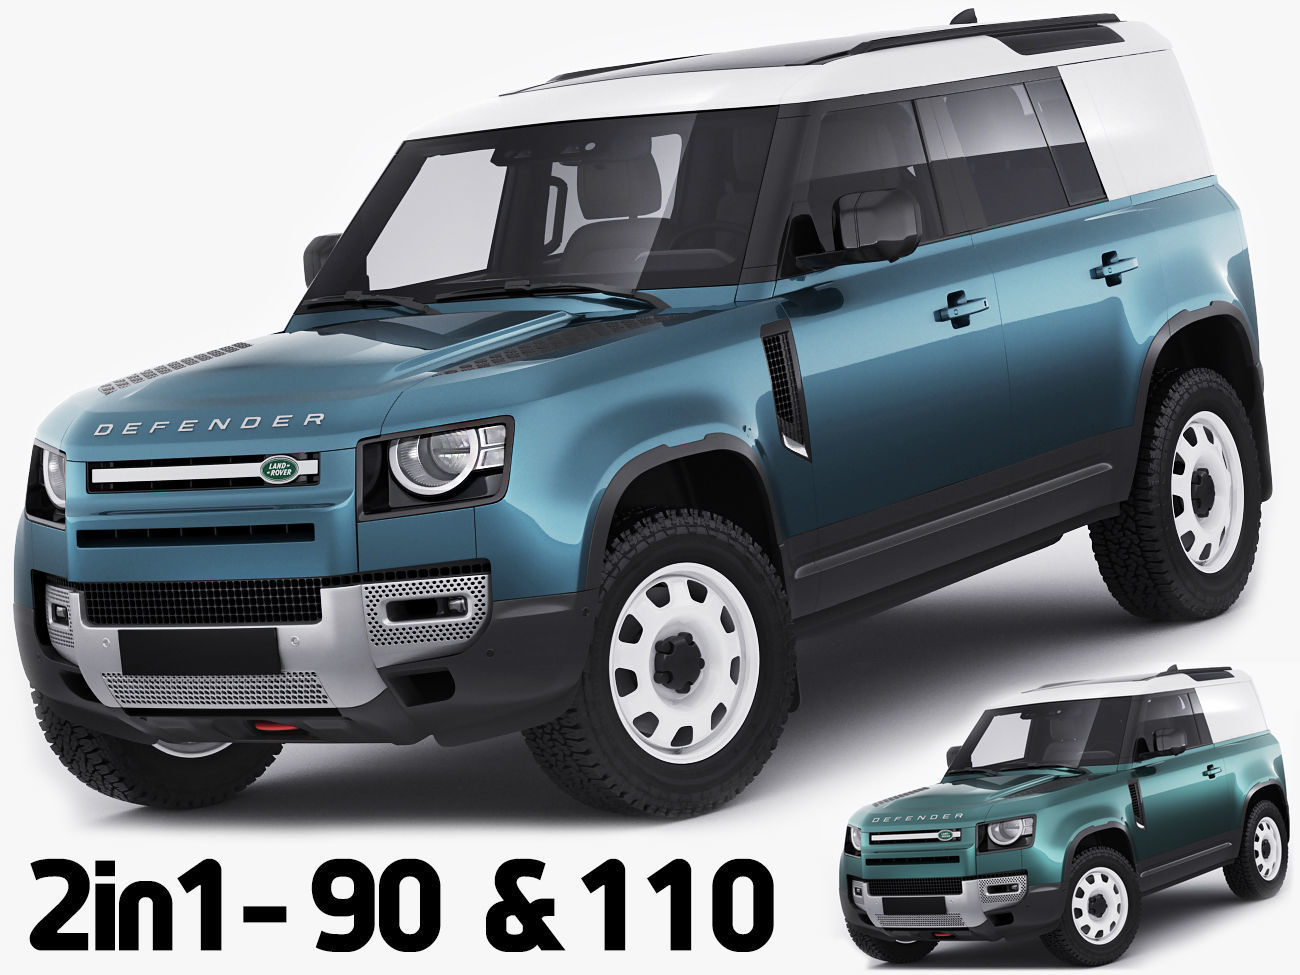 Land Rover Defender Hard Top 110 and 90